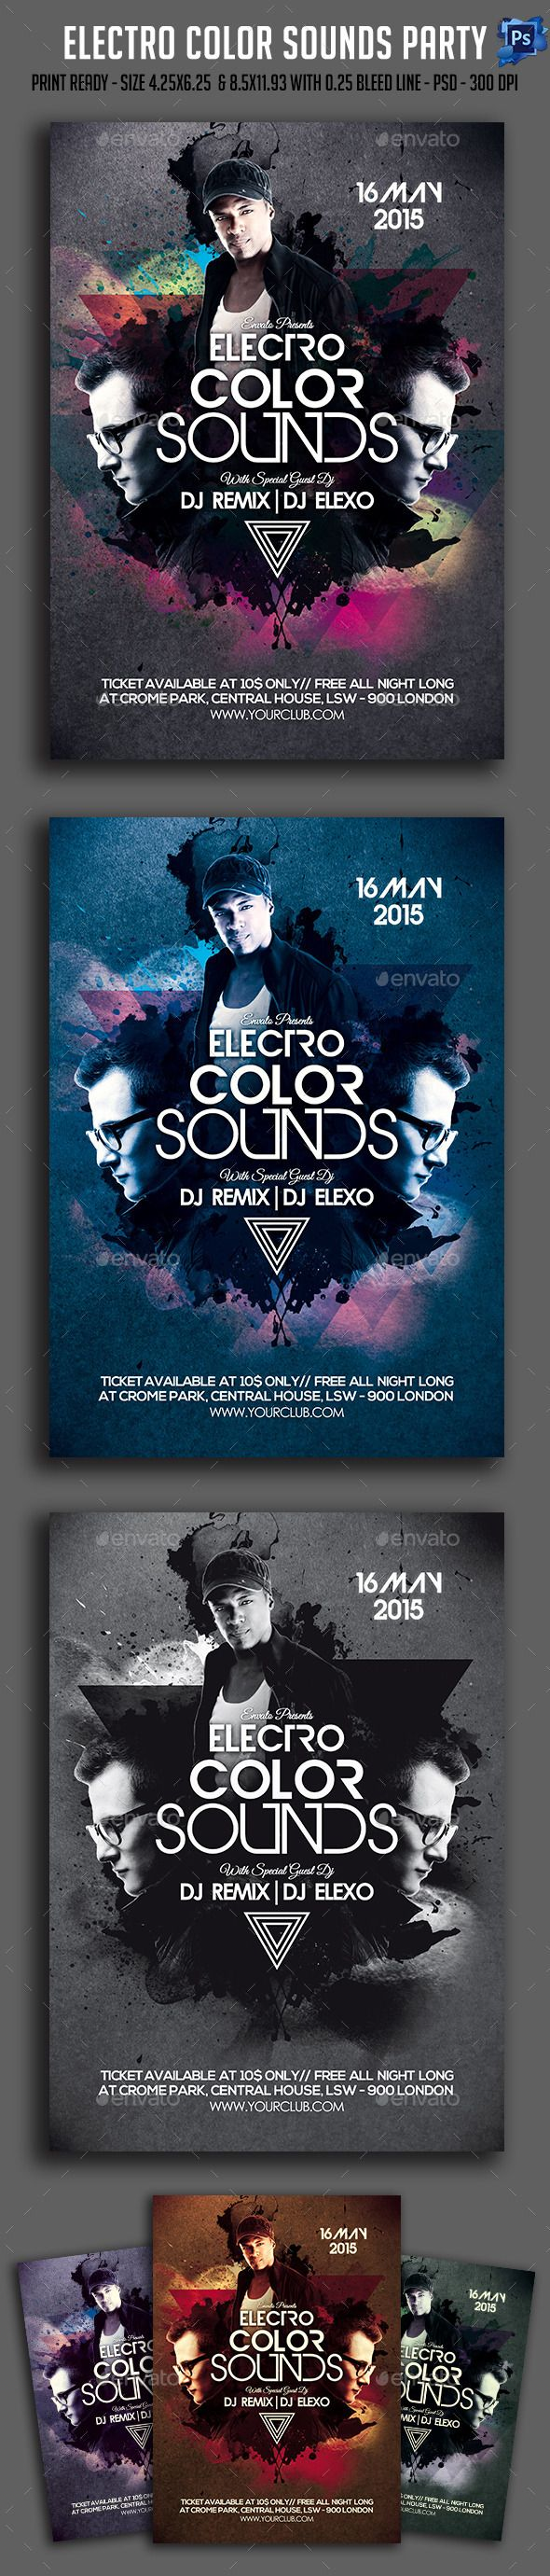 Electro Color Sounds Party Flyer